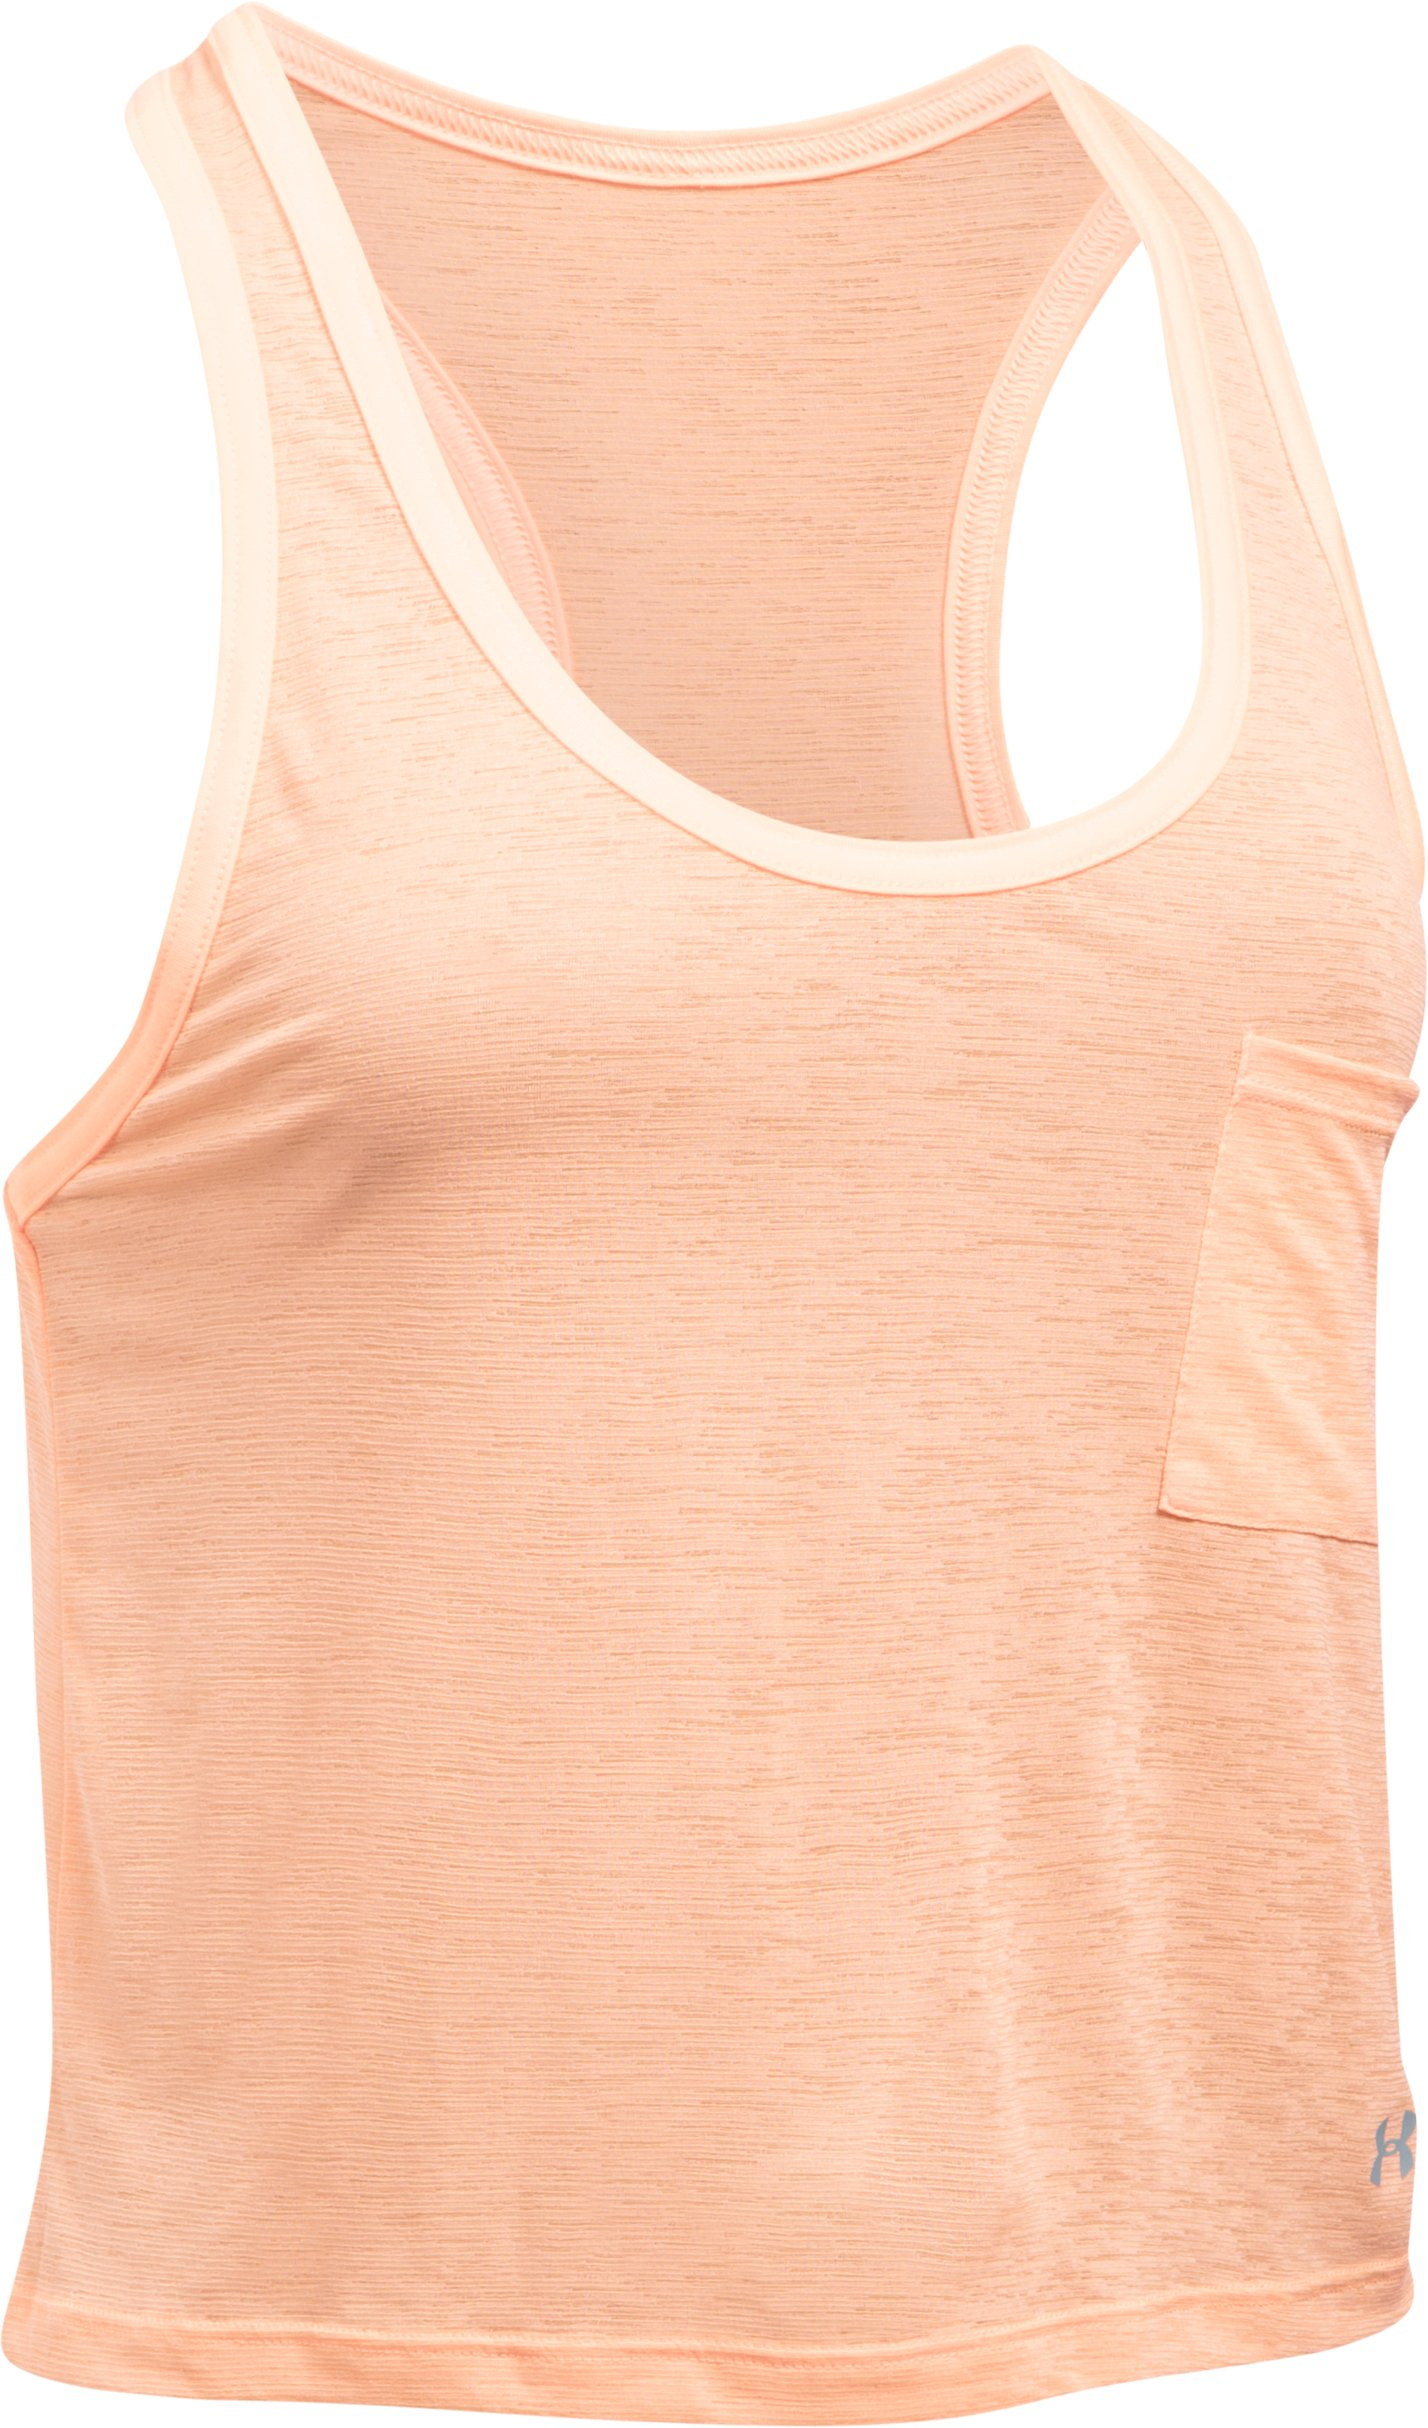 Women's UA Tech™ Slub Shorty Tank, PLAYFUL PEACH